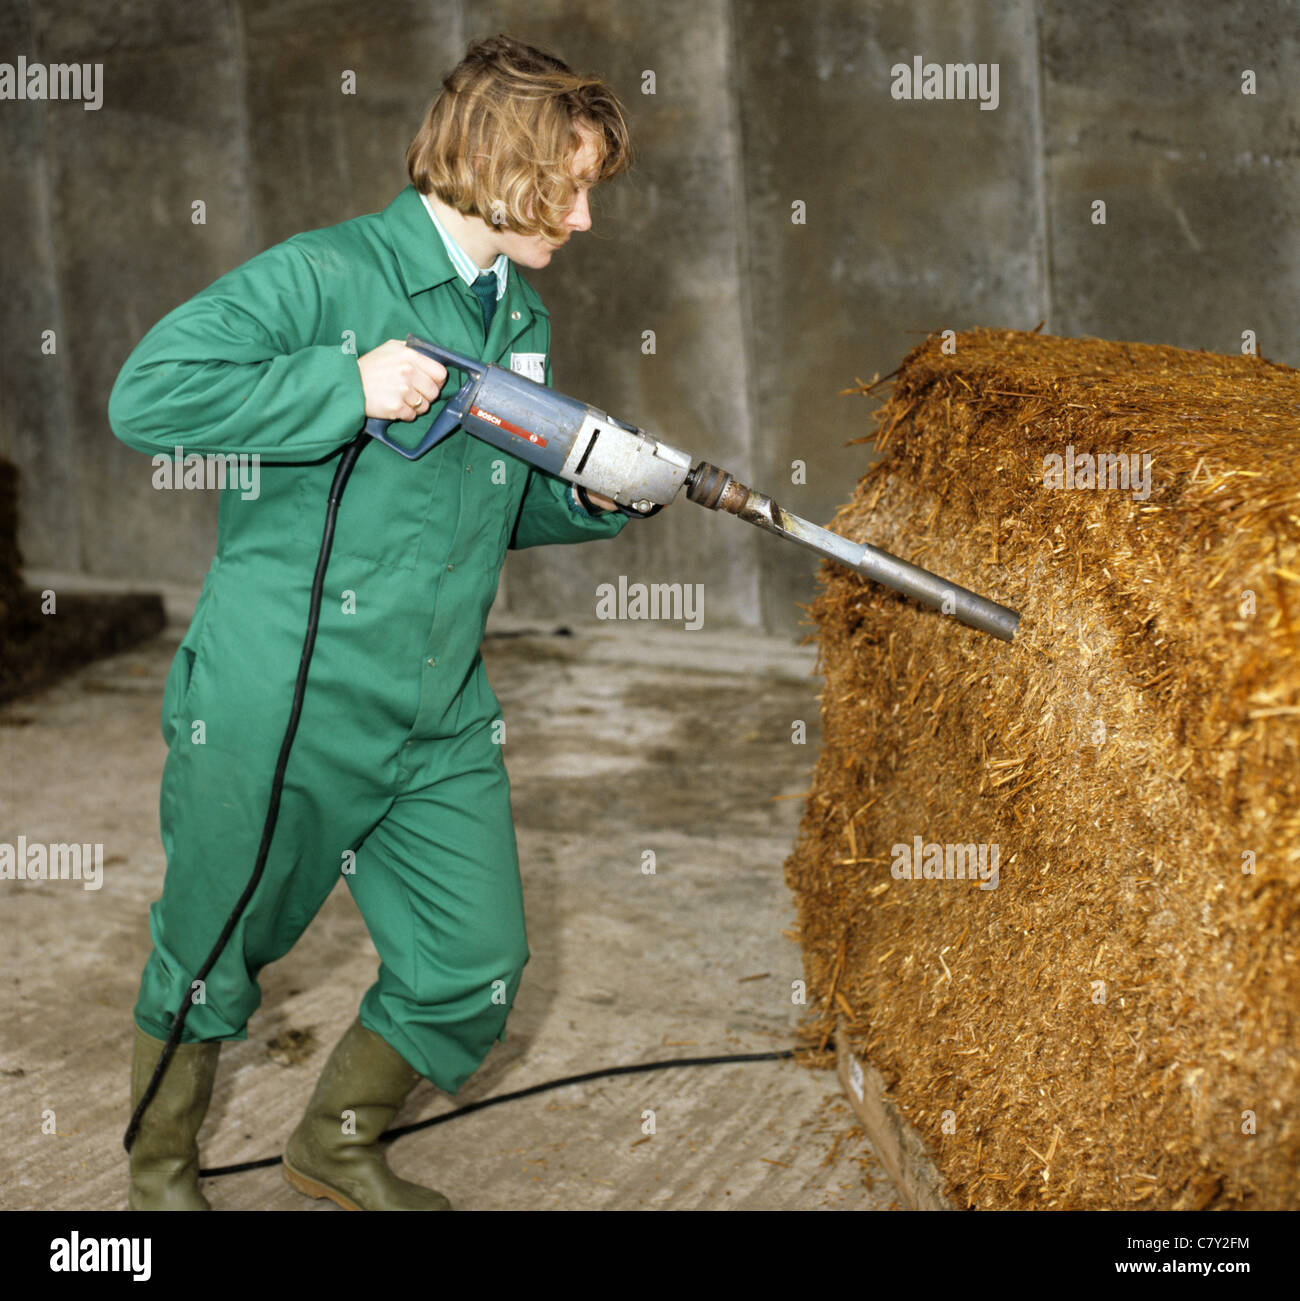 Woman researcher taking a core sample from a whole wheat crop silage block for testing - Stock Image